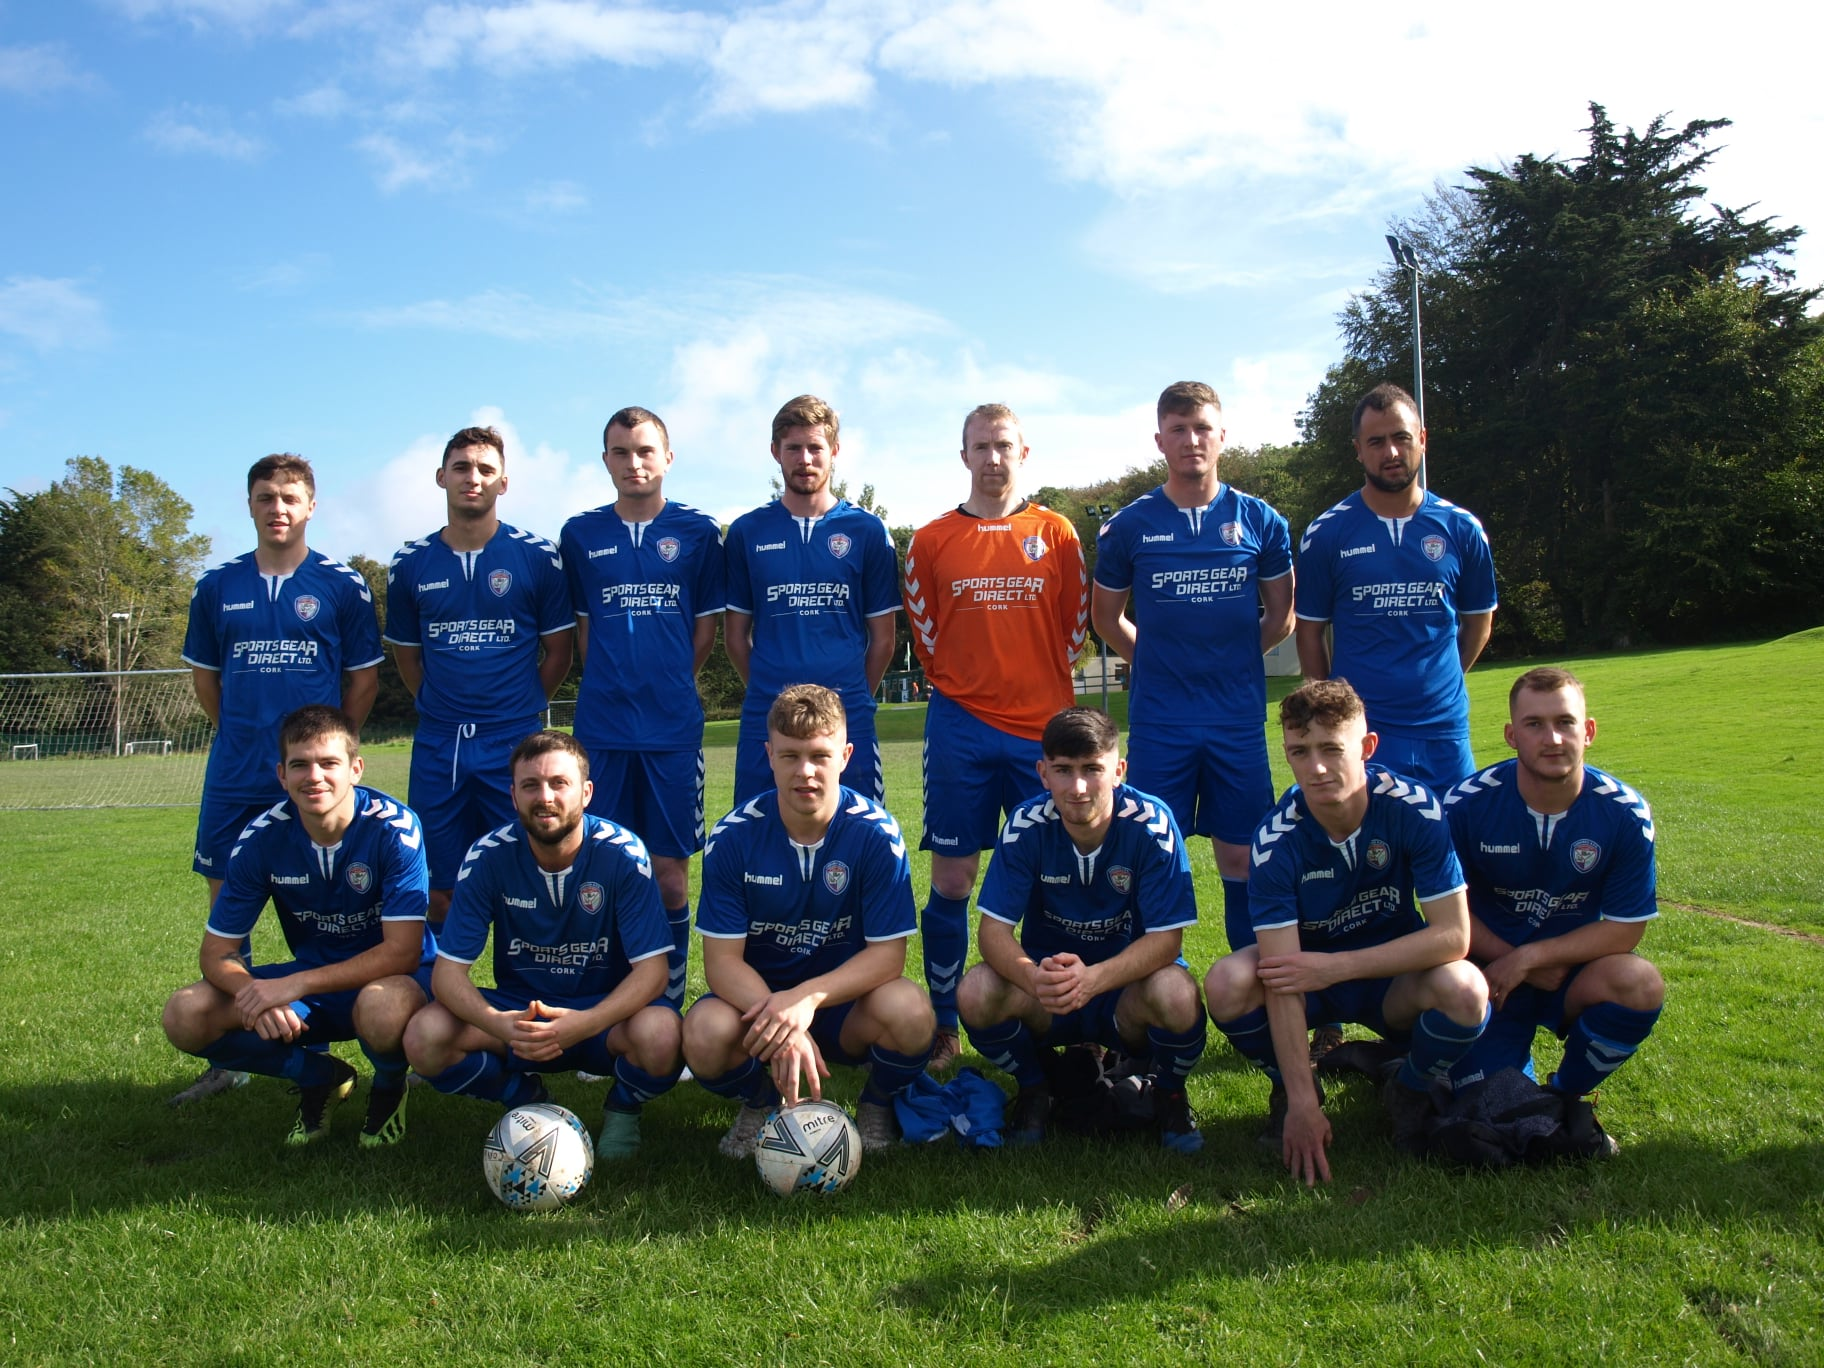 AOH Cup game in Whitegate – Corkbeg 1 Coachford 4